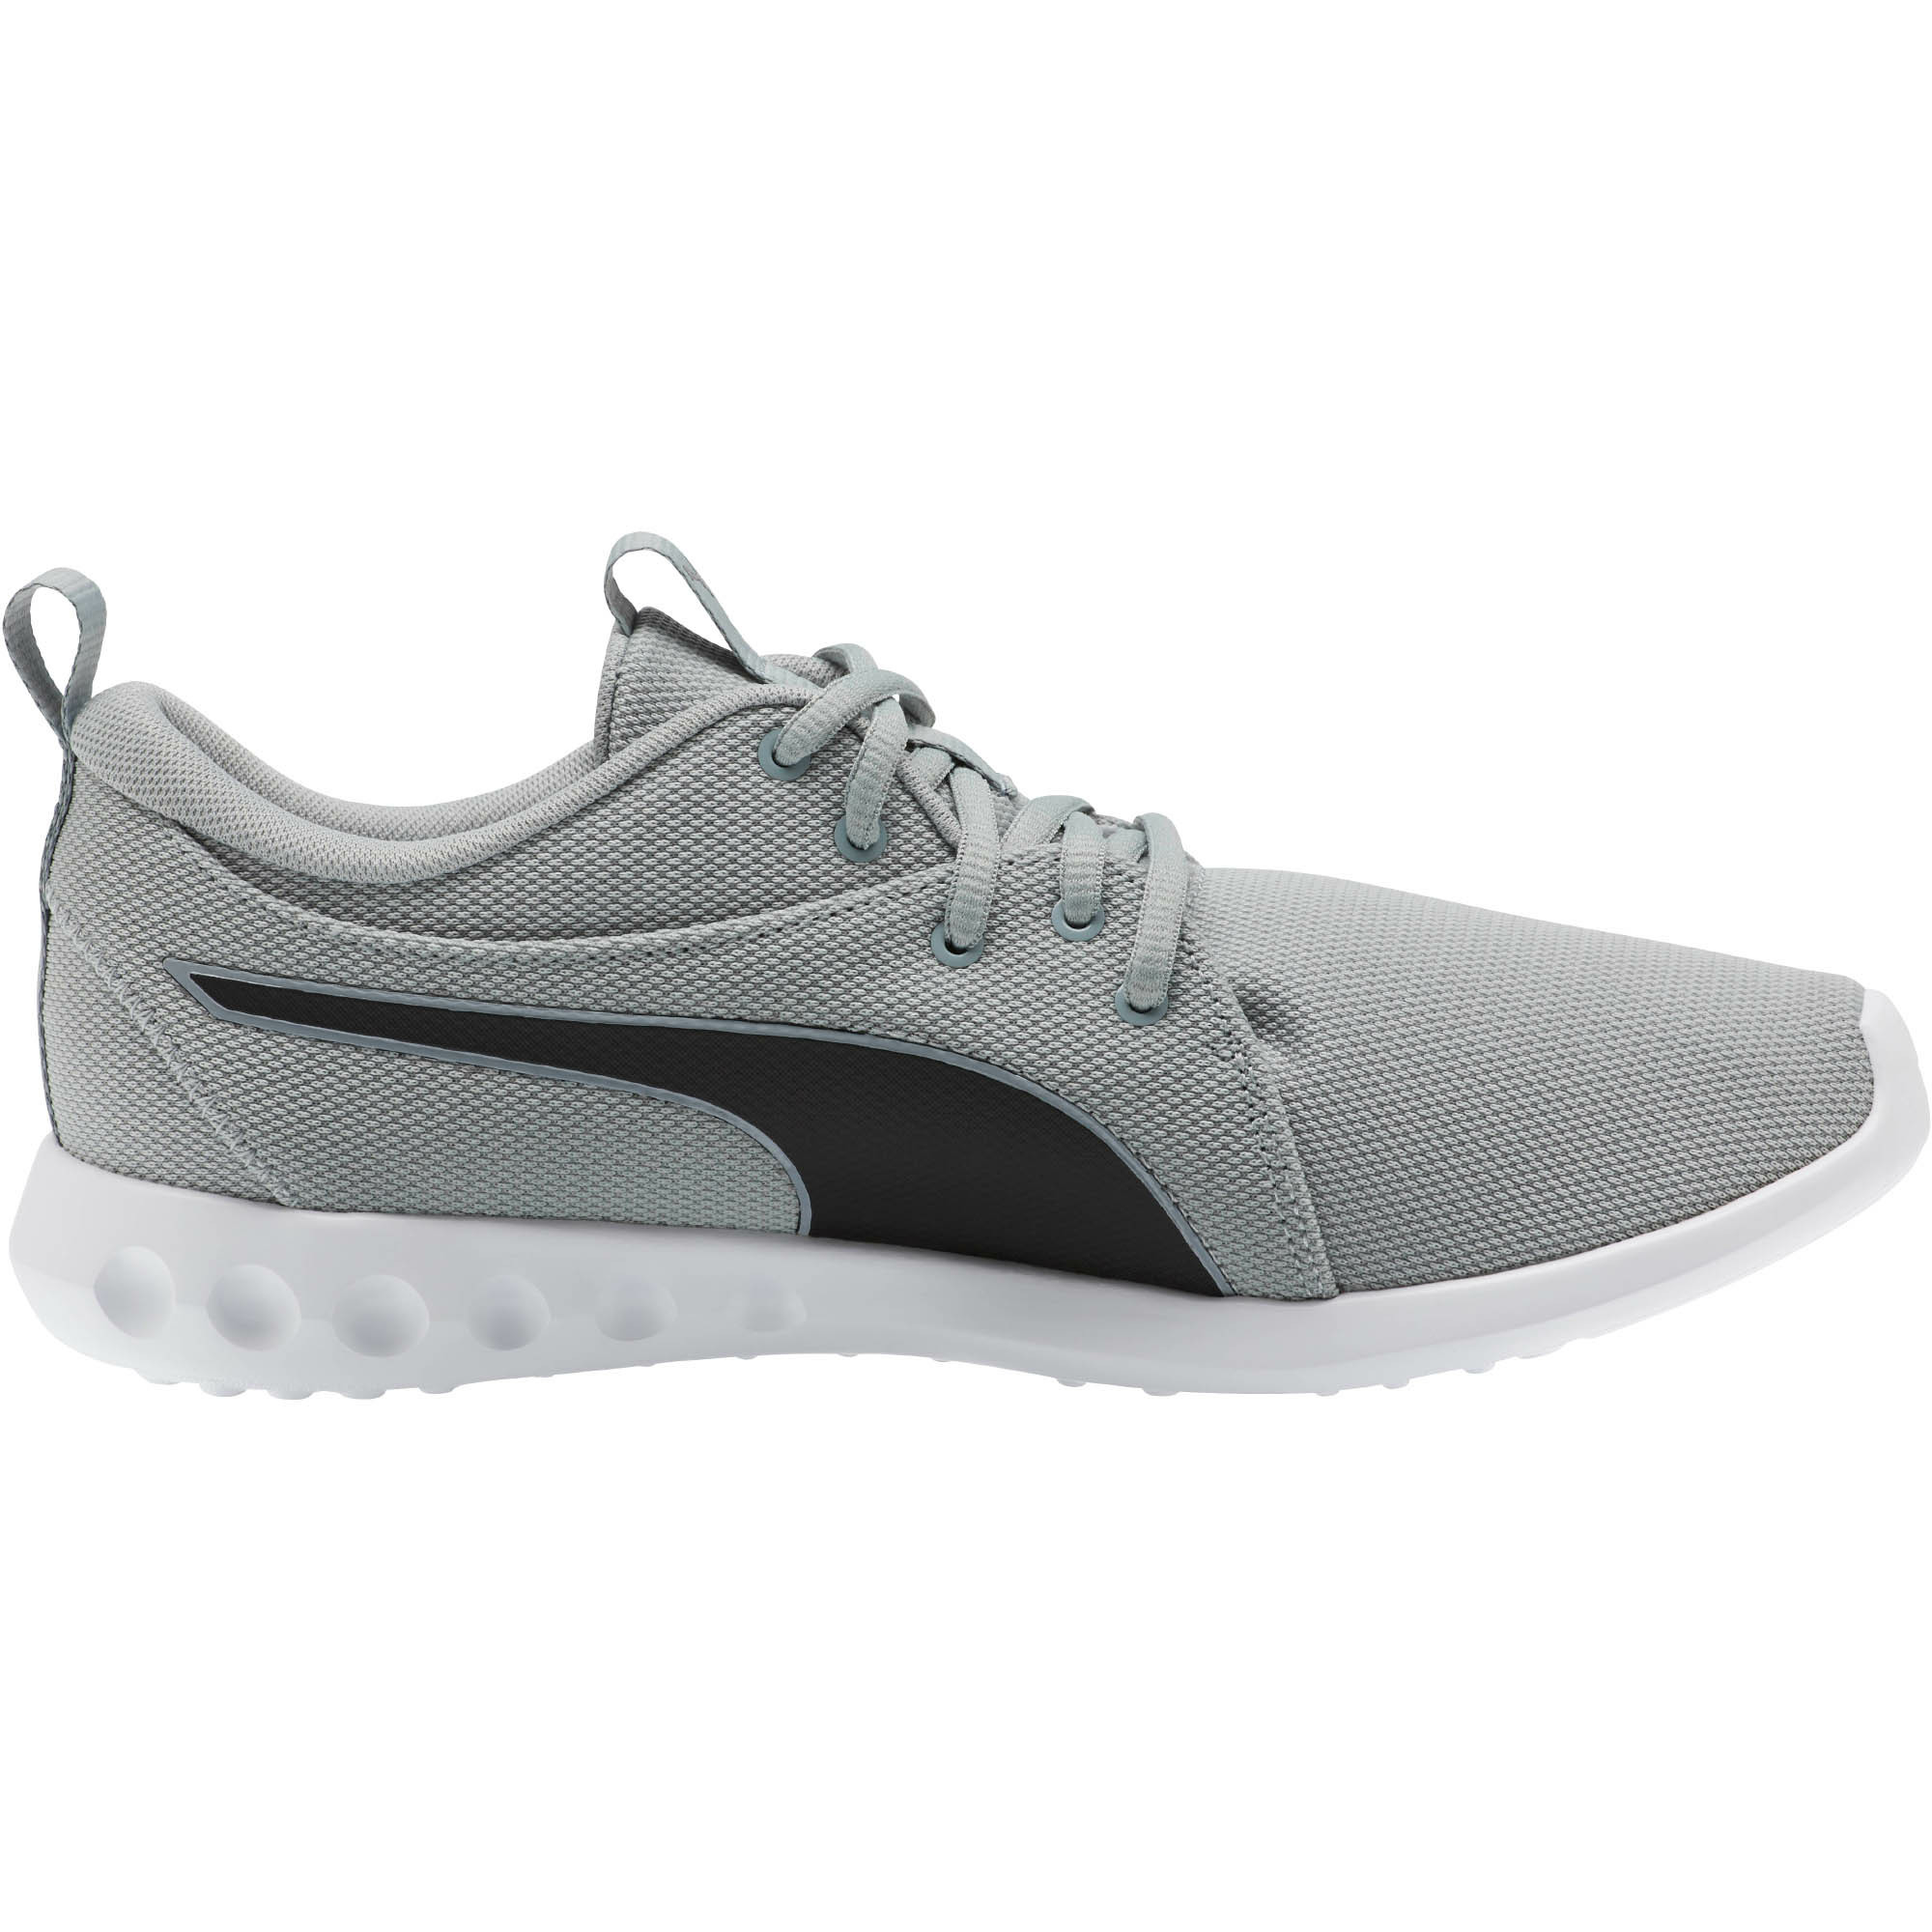 PUMA-Men-039-s-Carson-2-Cosmo-Running-Shoes thumbnail 10